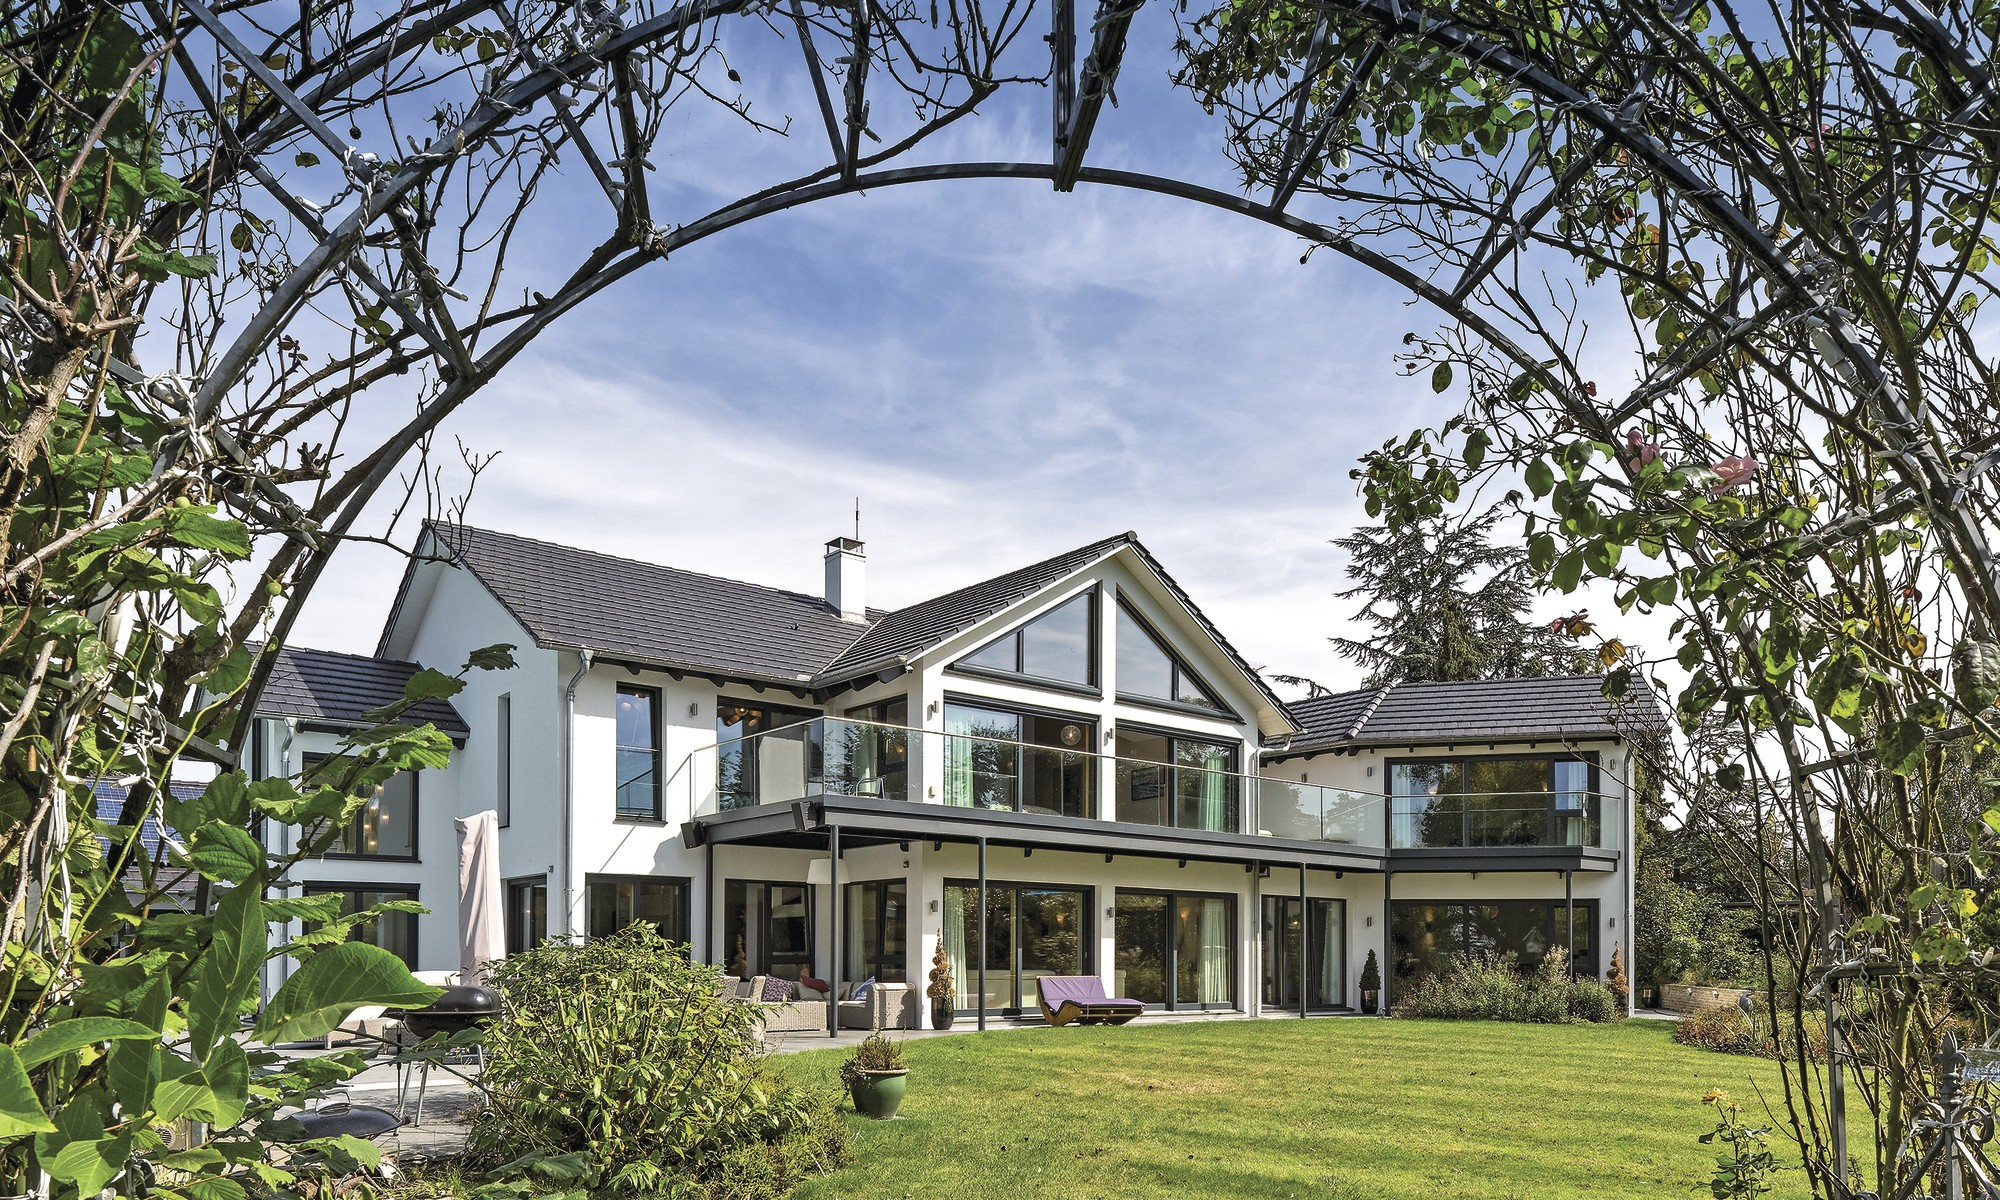 Eco-friendly luxury self-build home